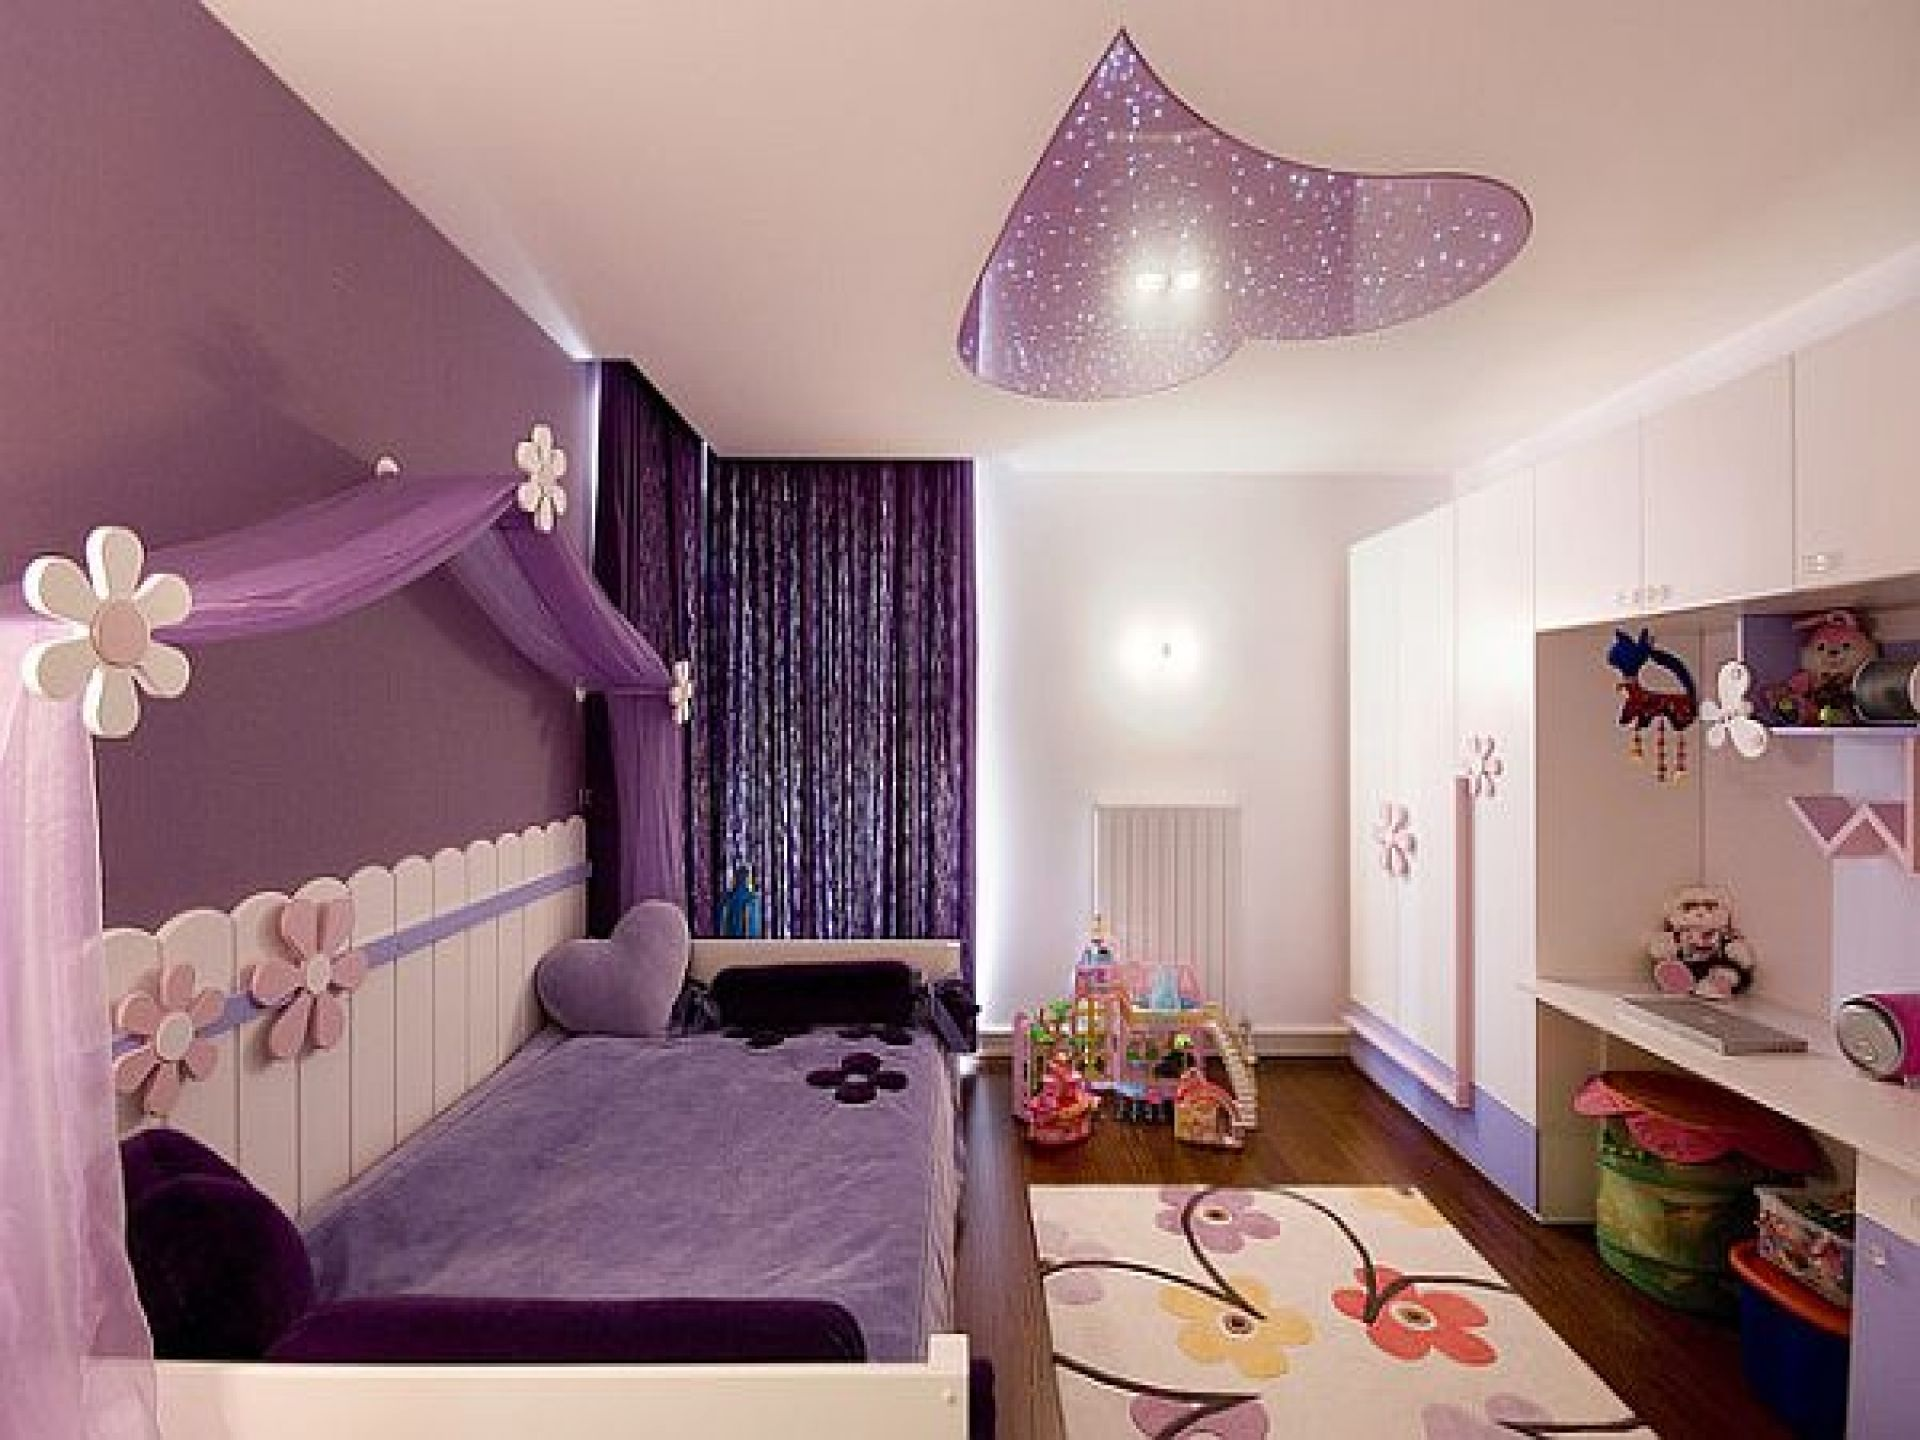 Enchanting Bedroom Ideas For Teens With White Wall Cabinets And